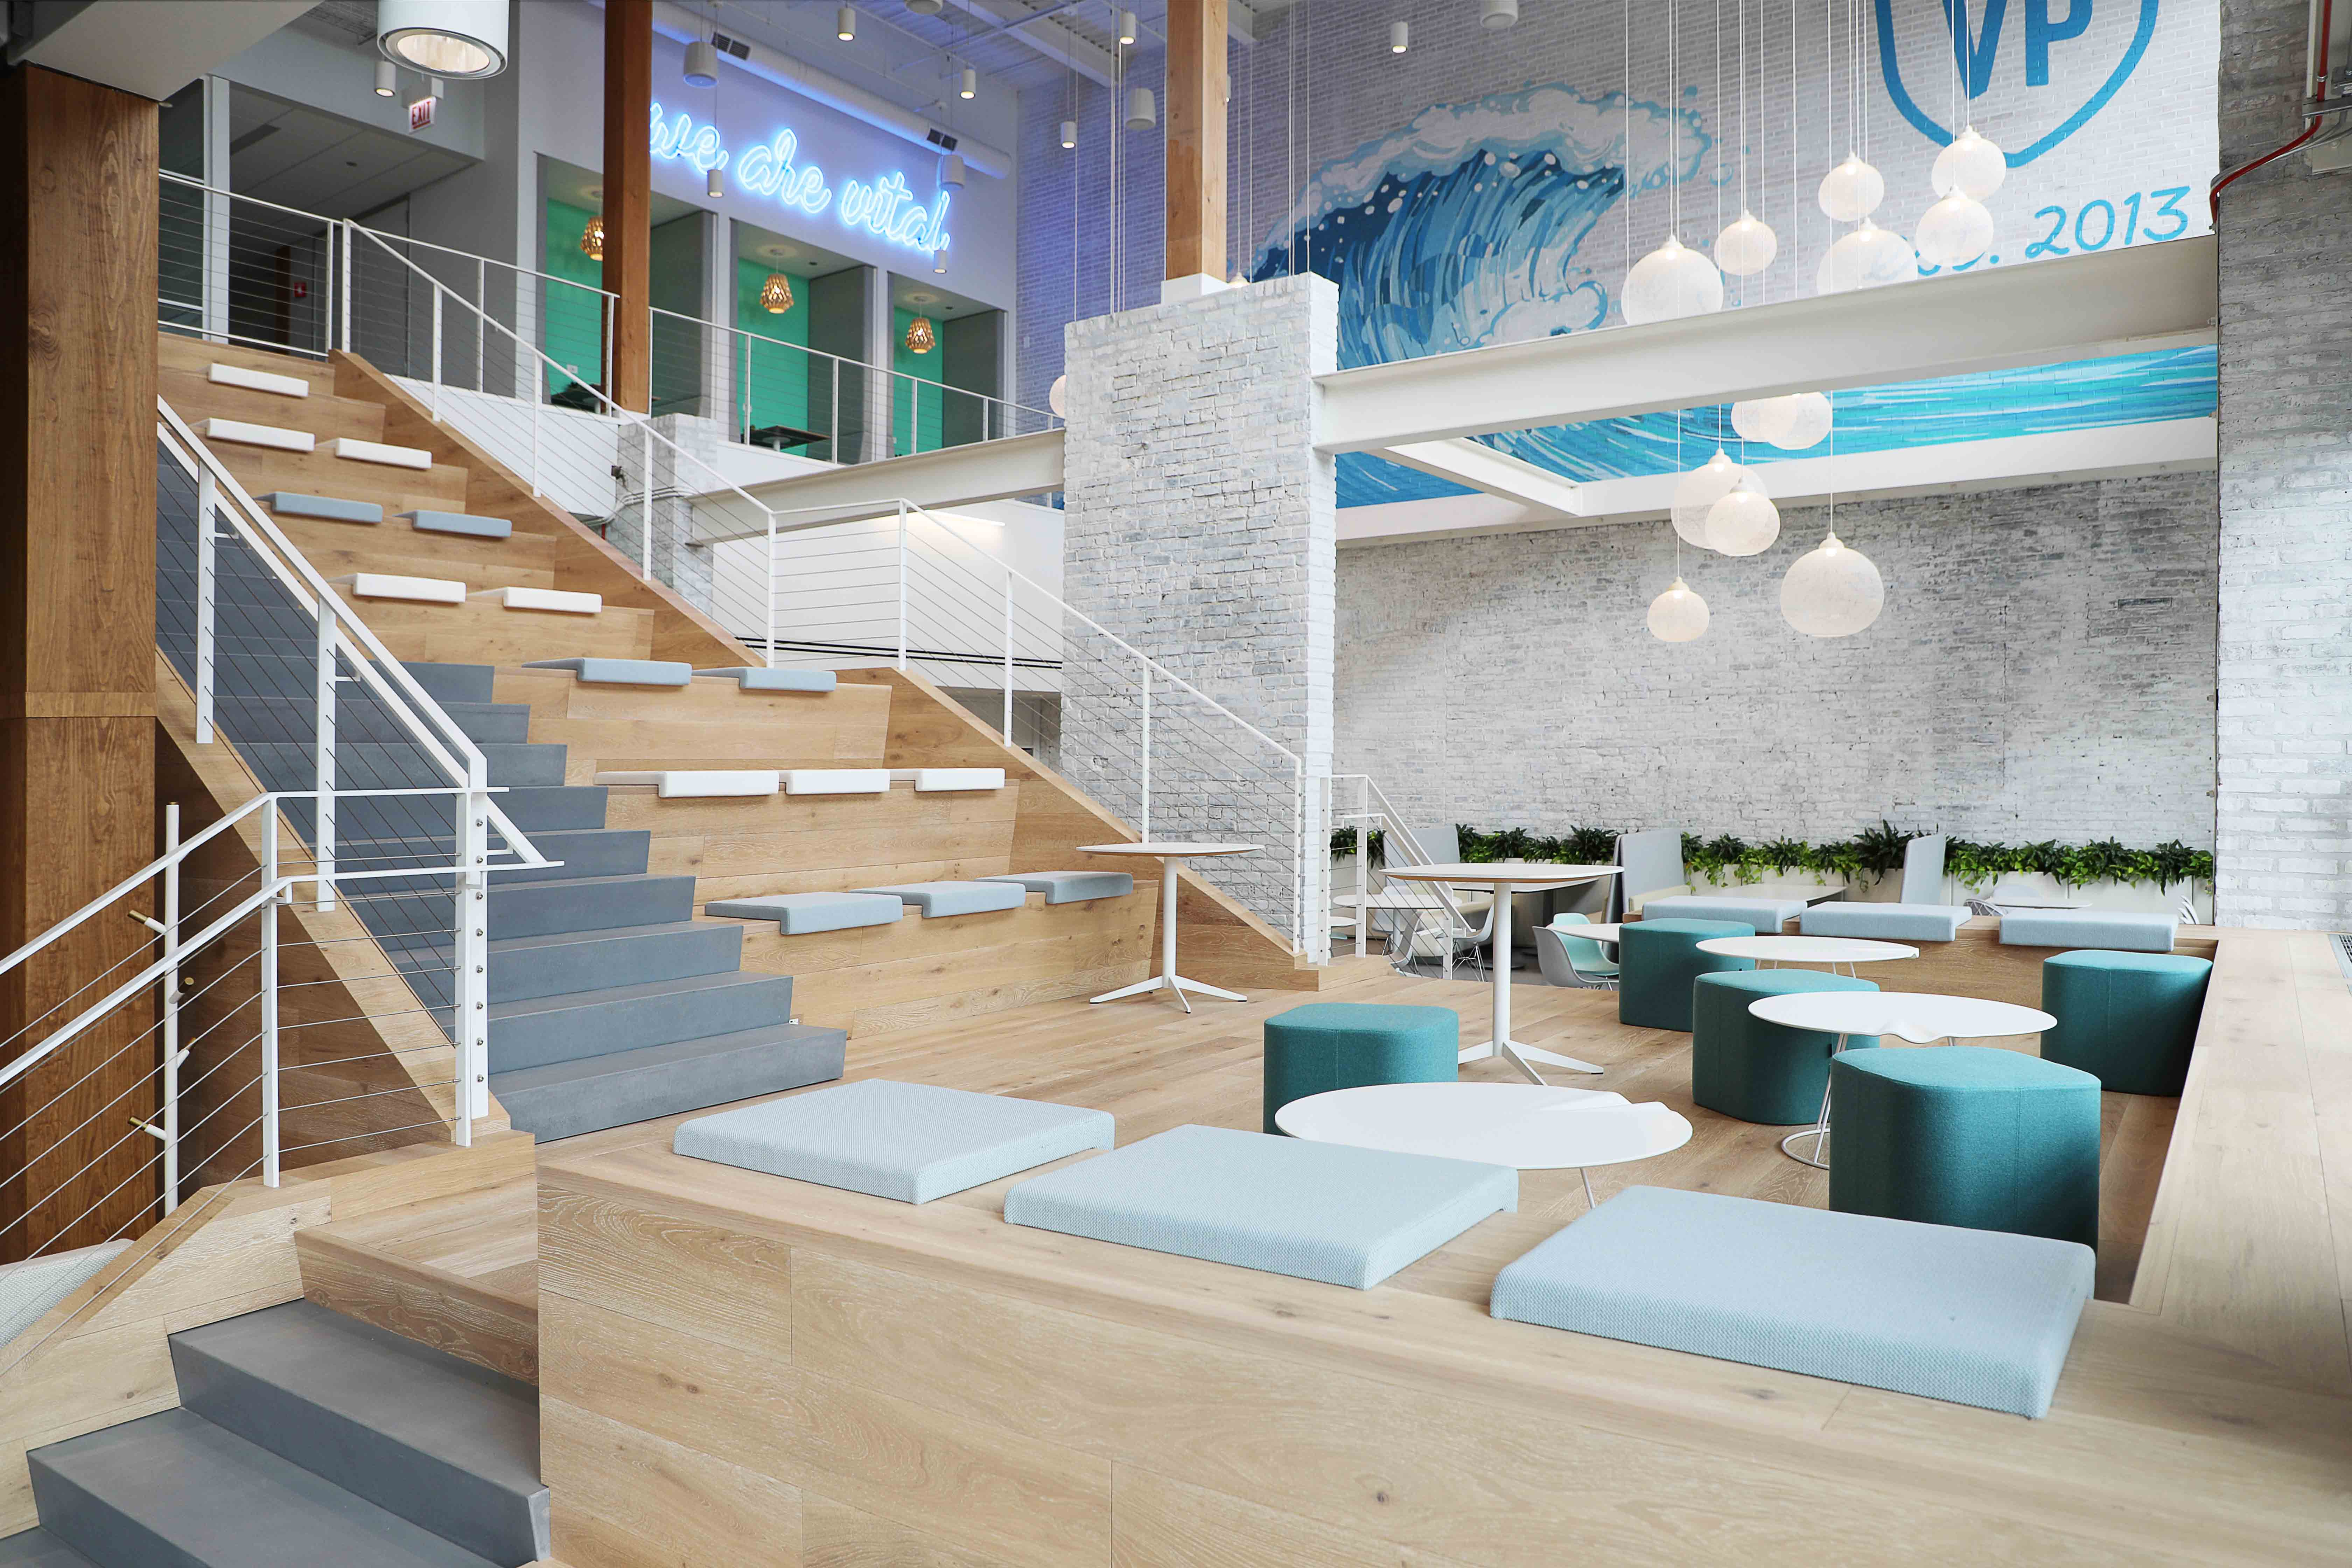 Skender wraps up interior work on new Vital Proteins HQ in Fulton Market